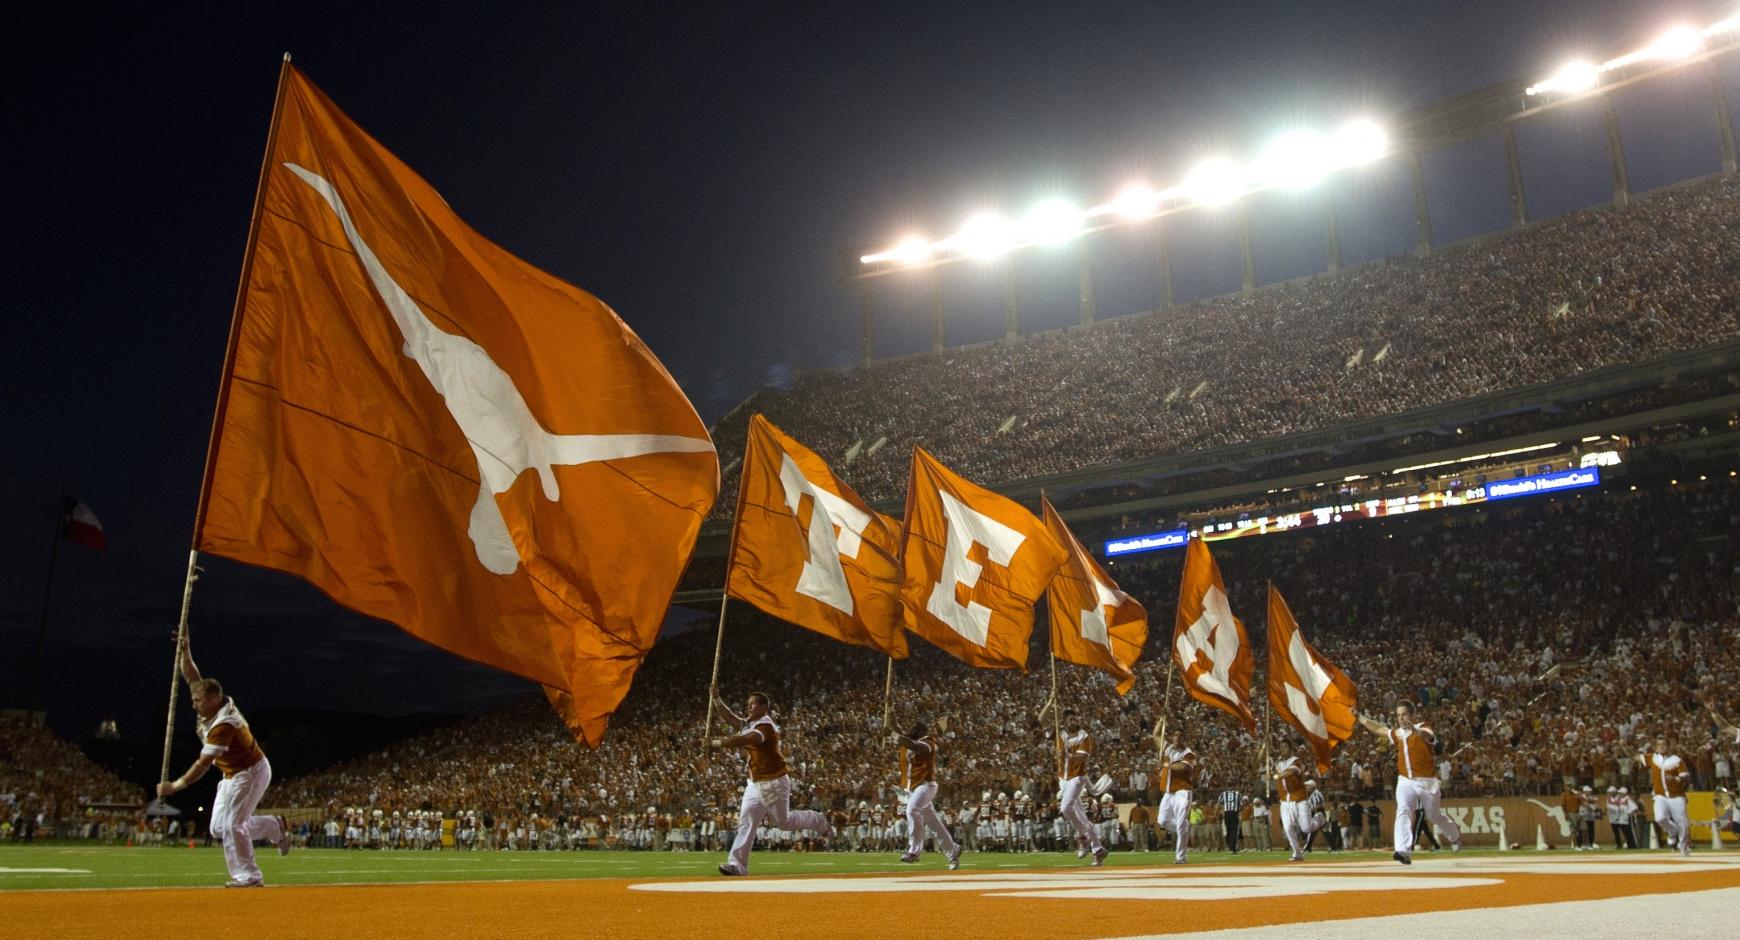 Texas cheerleaders running with flags through the endzone at a football game.